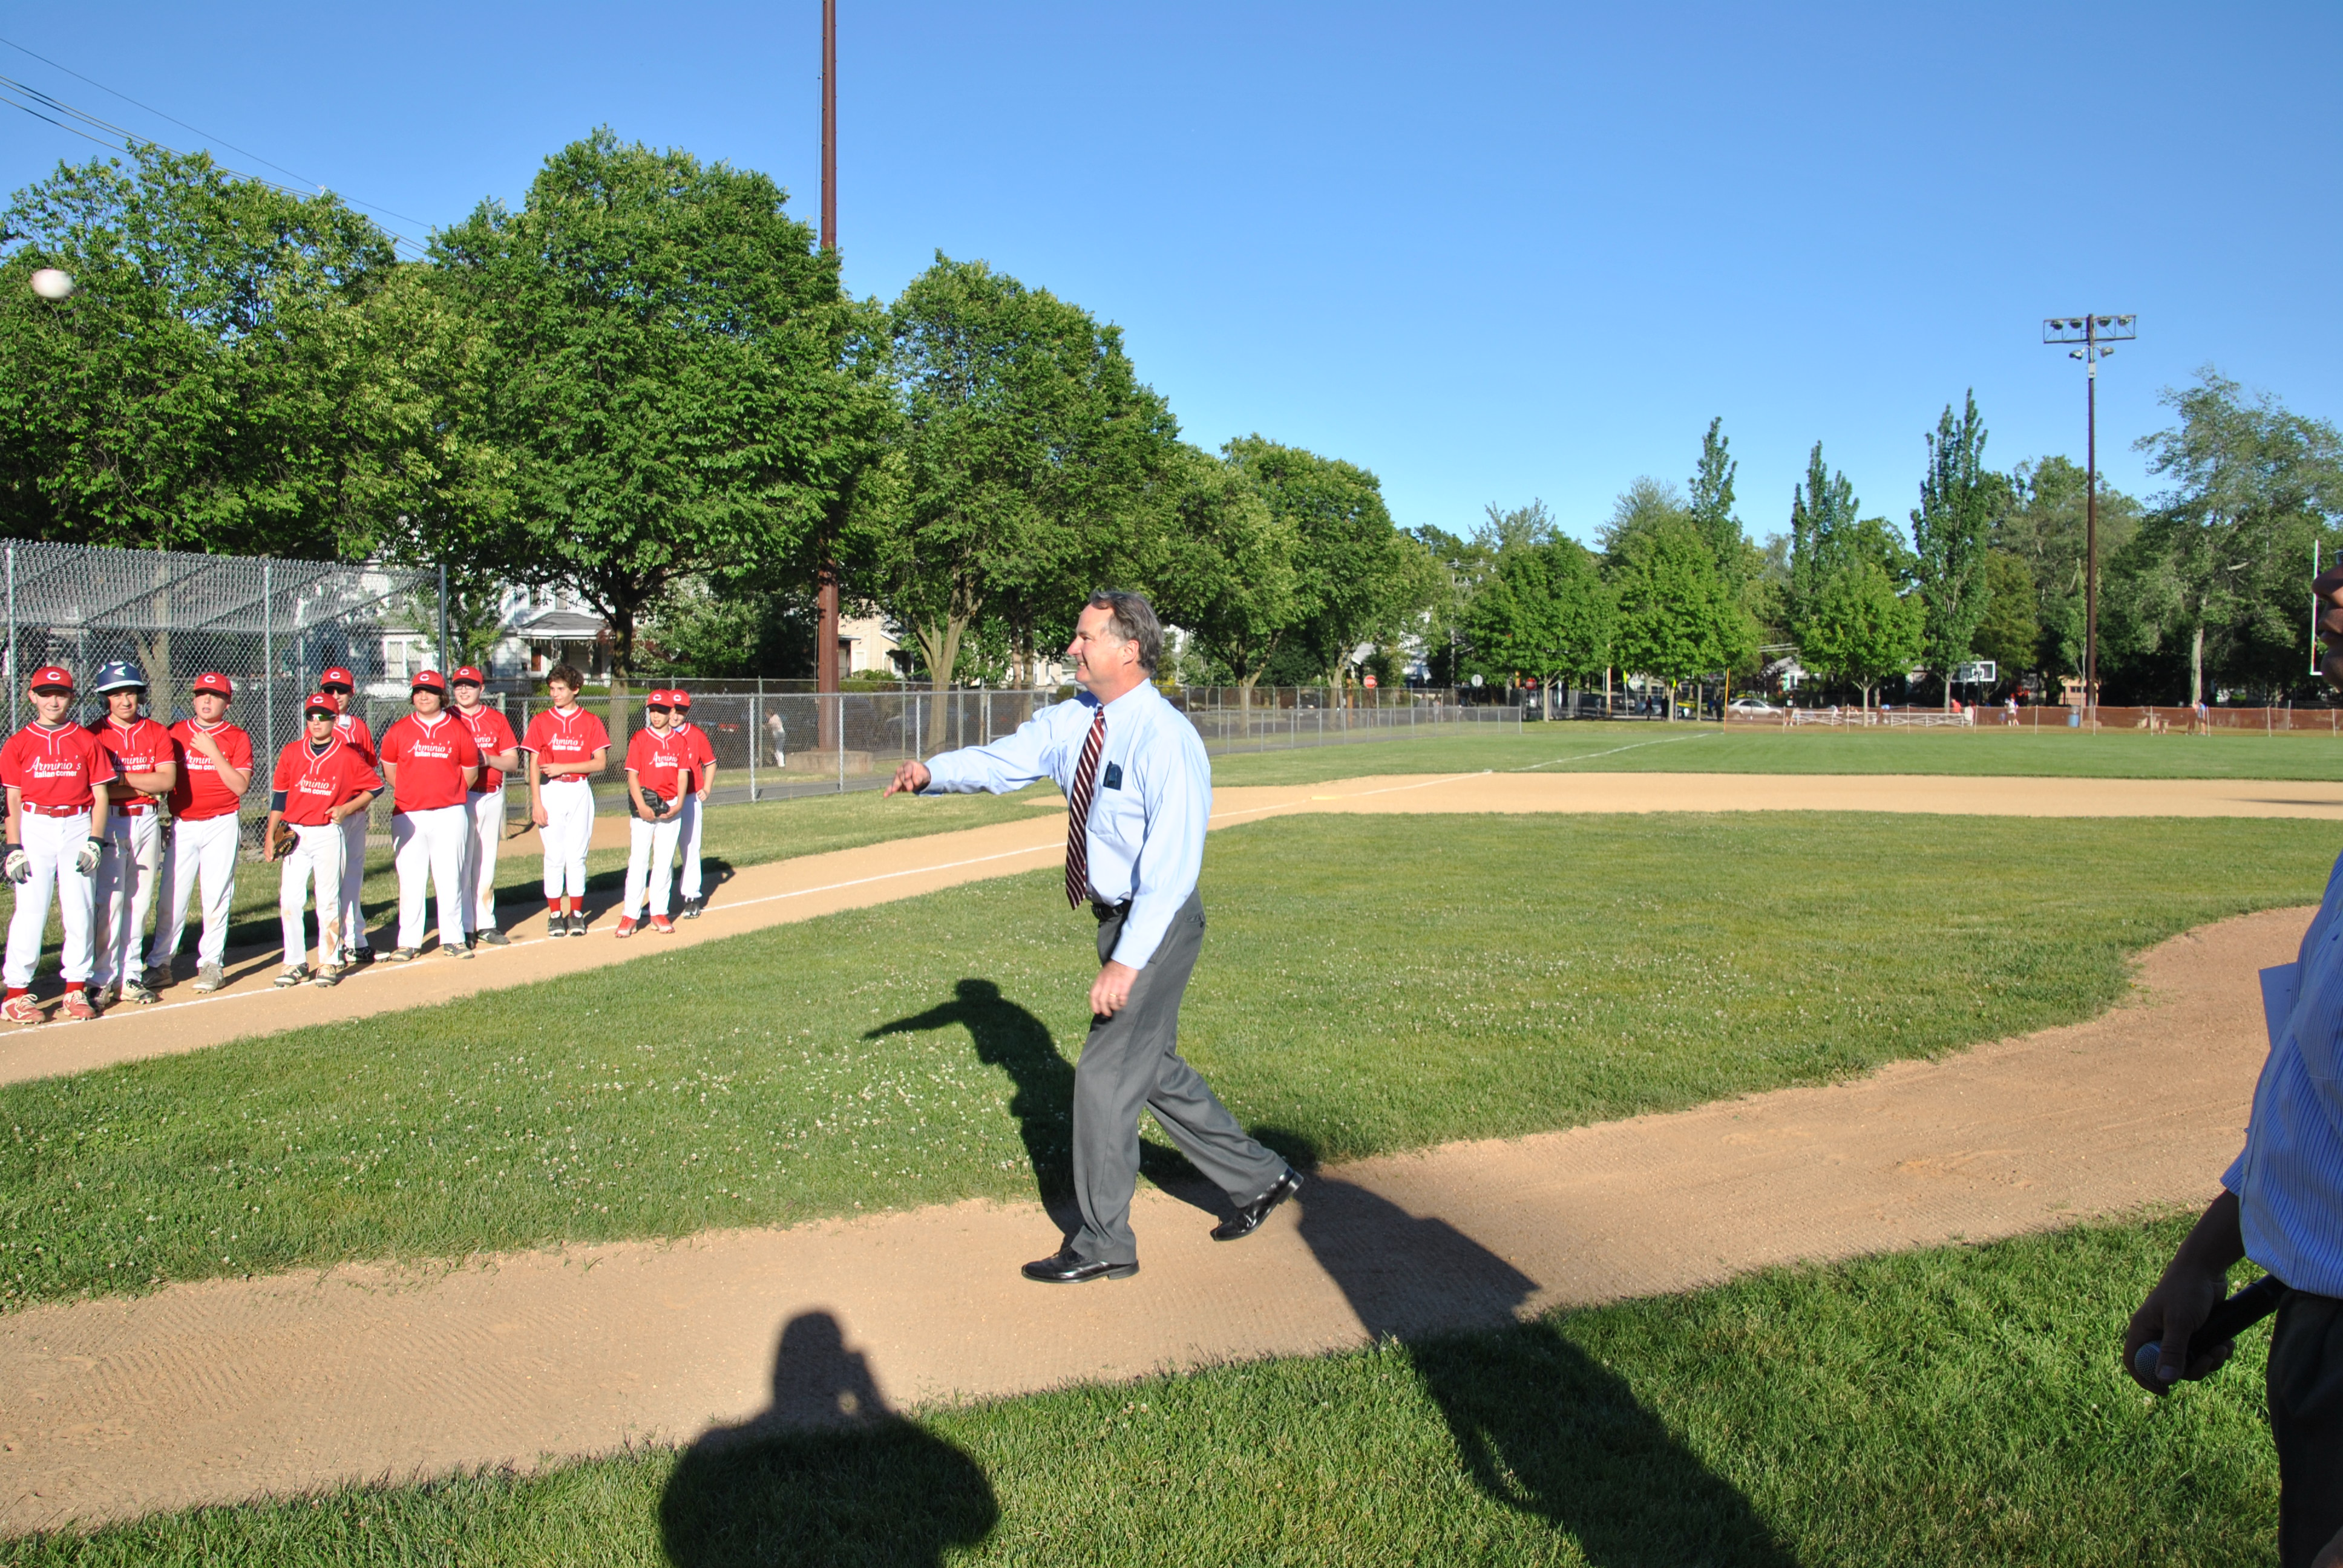 82c88d8f0411ceb99220_Mayor_Bob_Conley_throwing_out_1st_pitch_at_Dodge_Field.JPG